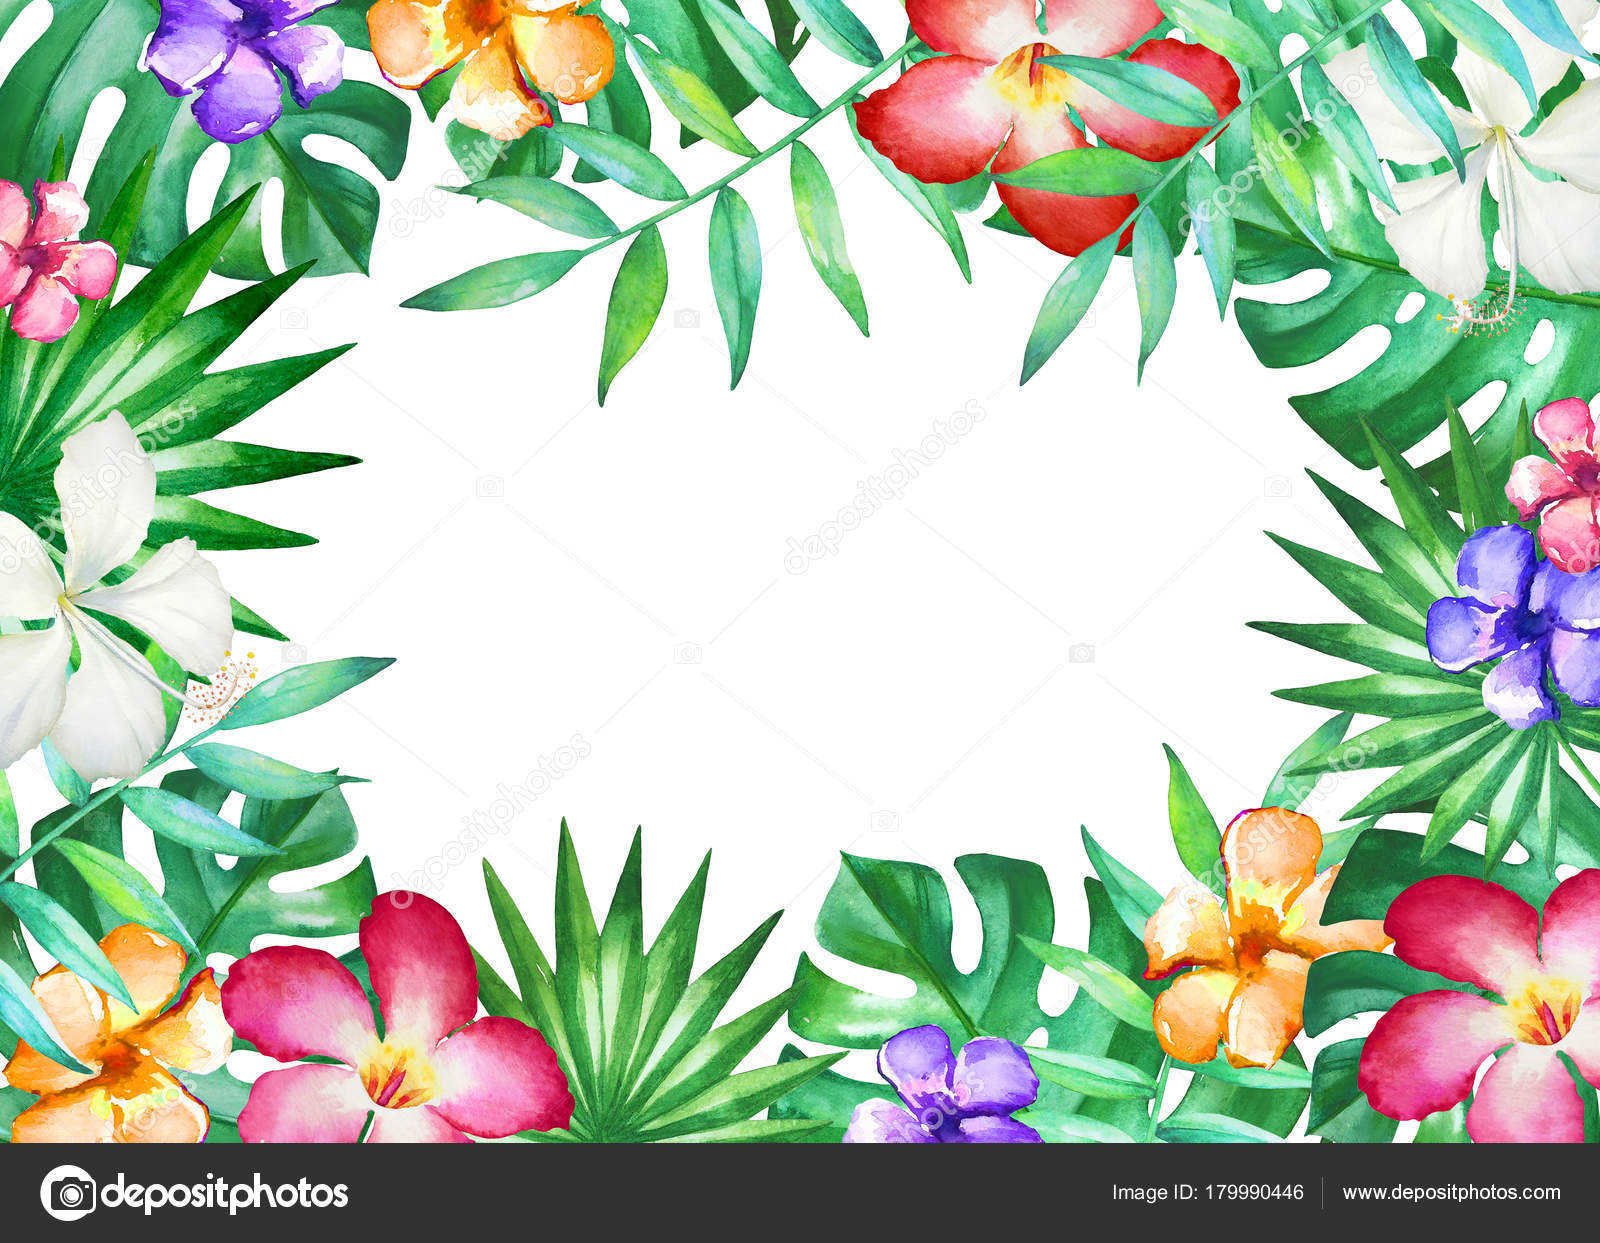 Watercolor Frame Tropical Leaves Flowers Isolated White Background Illustration Design Stock Photo C Lyubovtolstova 179990446 Here you can explore hq tropical flowers transparent illustrations, icons and clipart with filter setting like size, type, color etc. https depositphotos com 179990446 stock photo watercolor frame tropical leaves flowers html